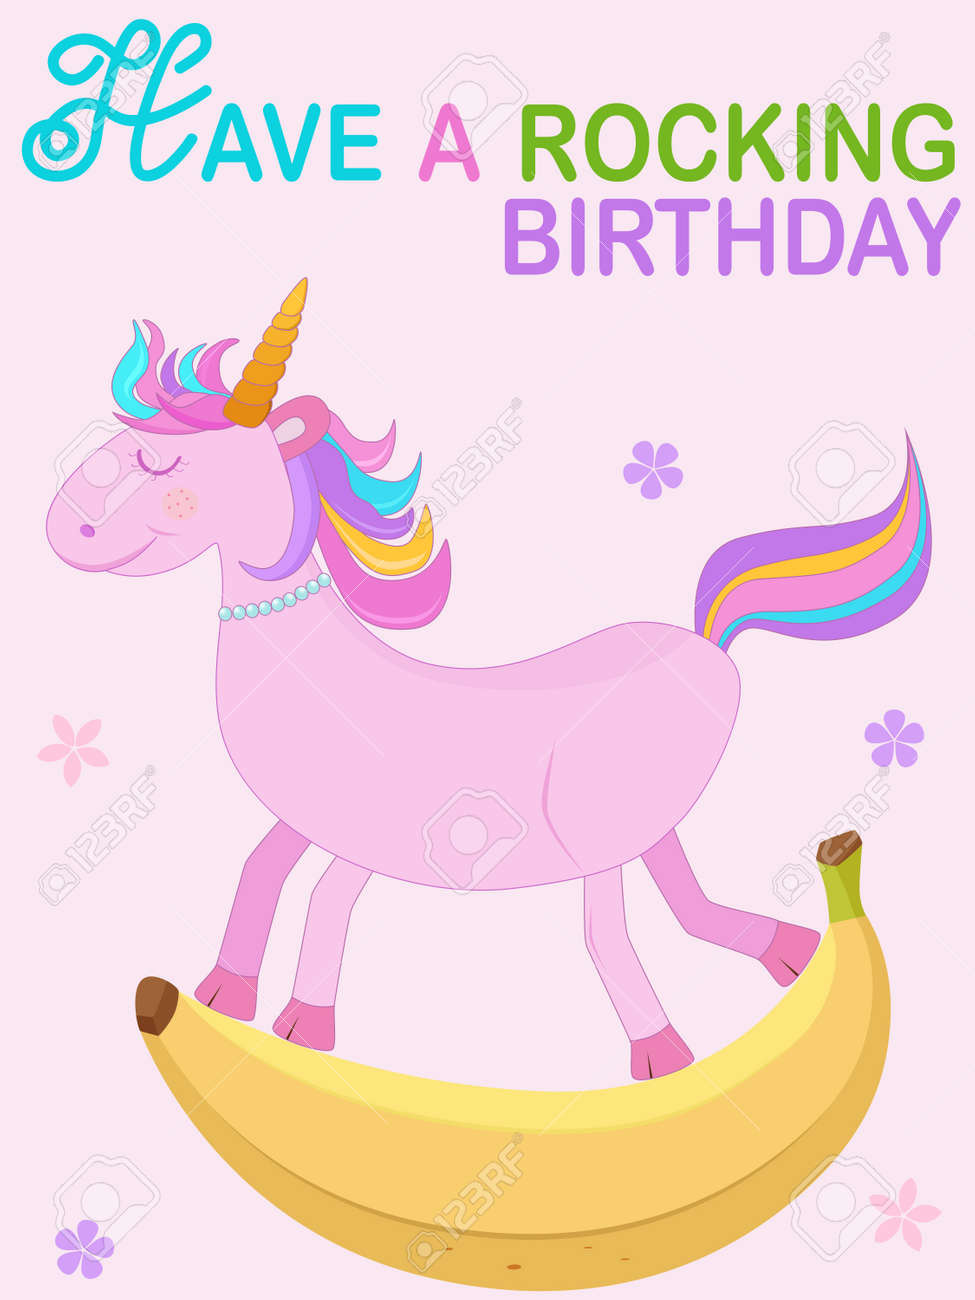 Vector   Vector Illustration Of Cute Unicorn Cartoon In Pink Rocking Banana  Rocking Chair With Have A Rocking Birthday Text On Pink Background